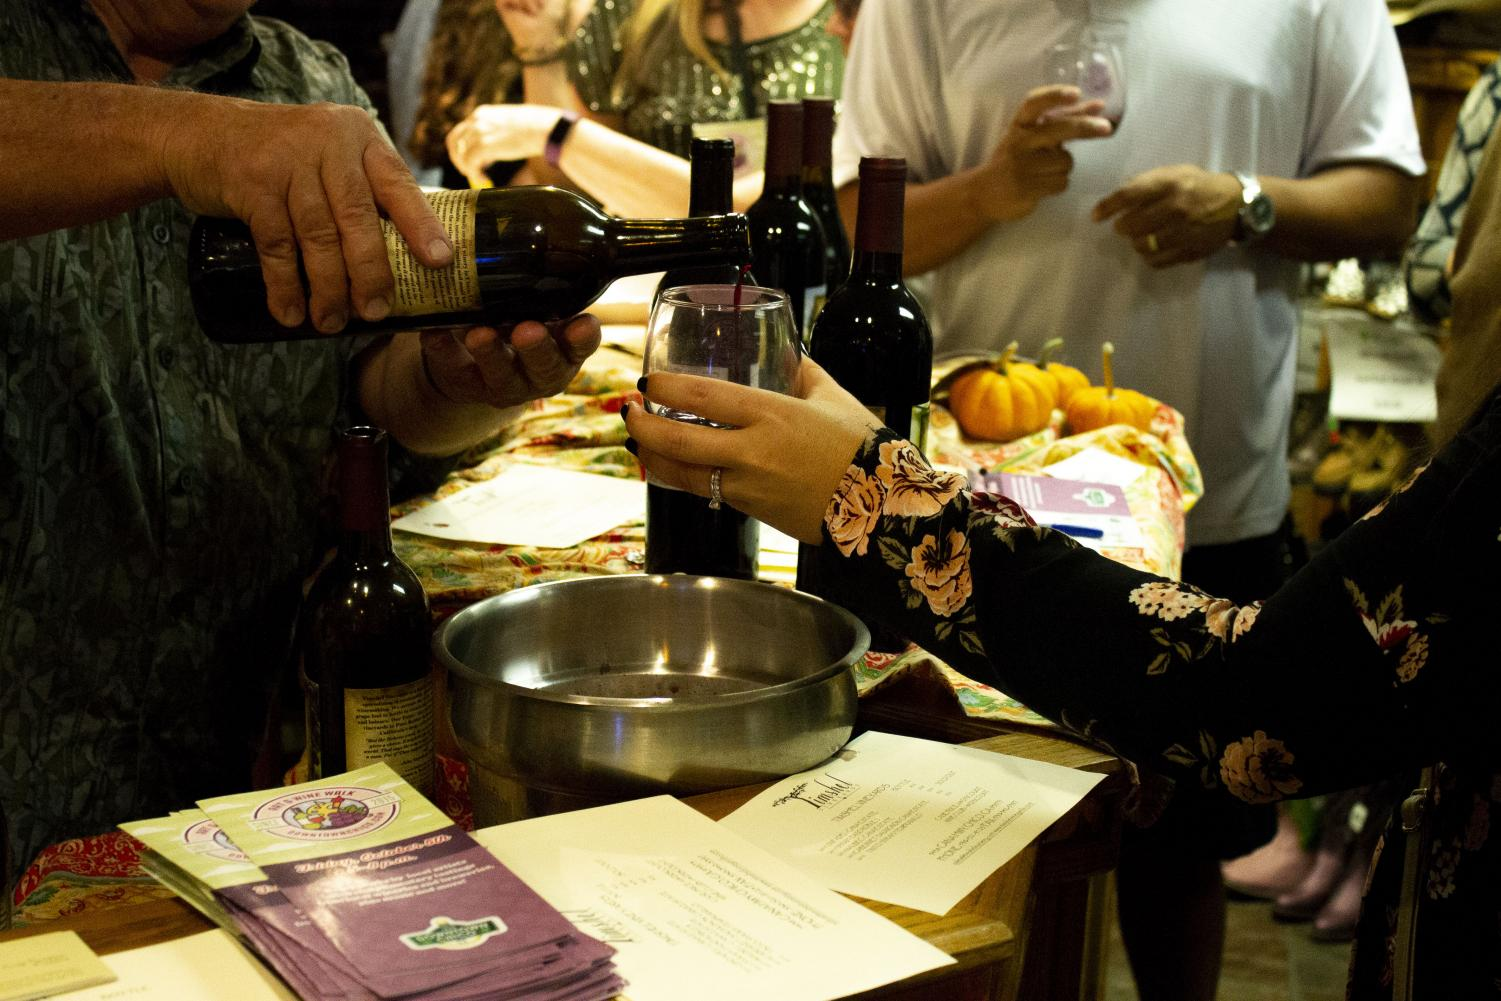 Wine is poured throughout Chico as many come together to enjoy some beautiful artwork. Photo credit: Dominique Wood